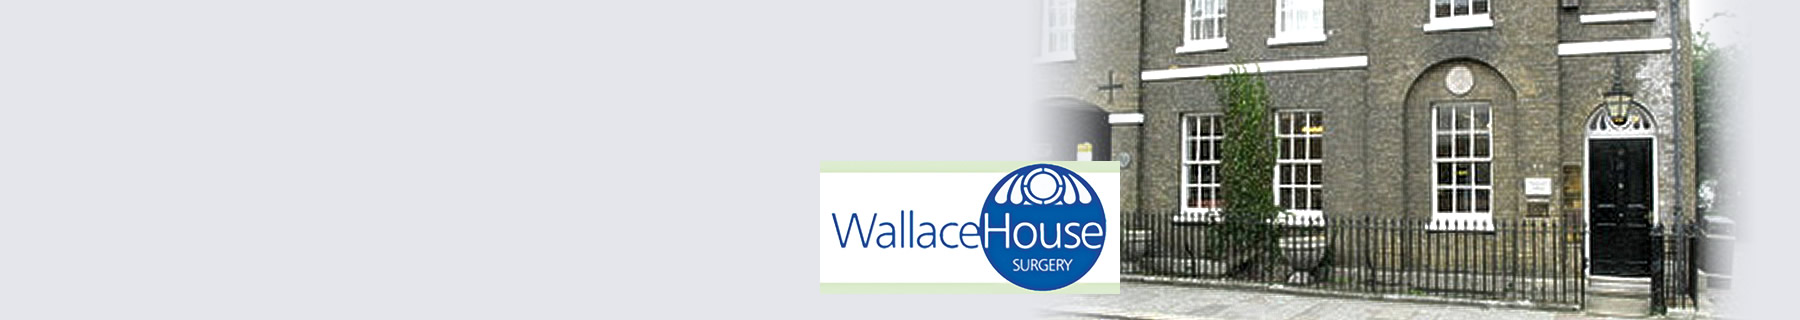 Surgery Connect improves the communications and efficiency of Wallace House Surgery